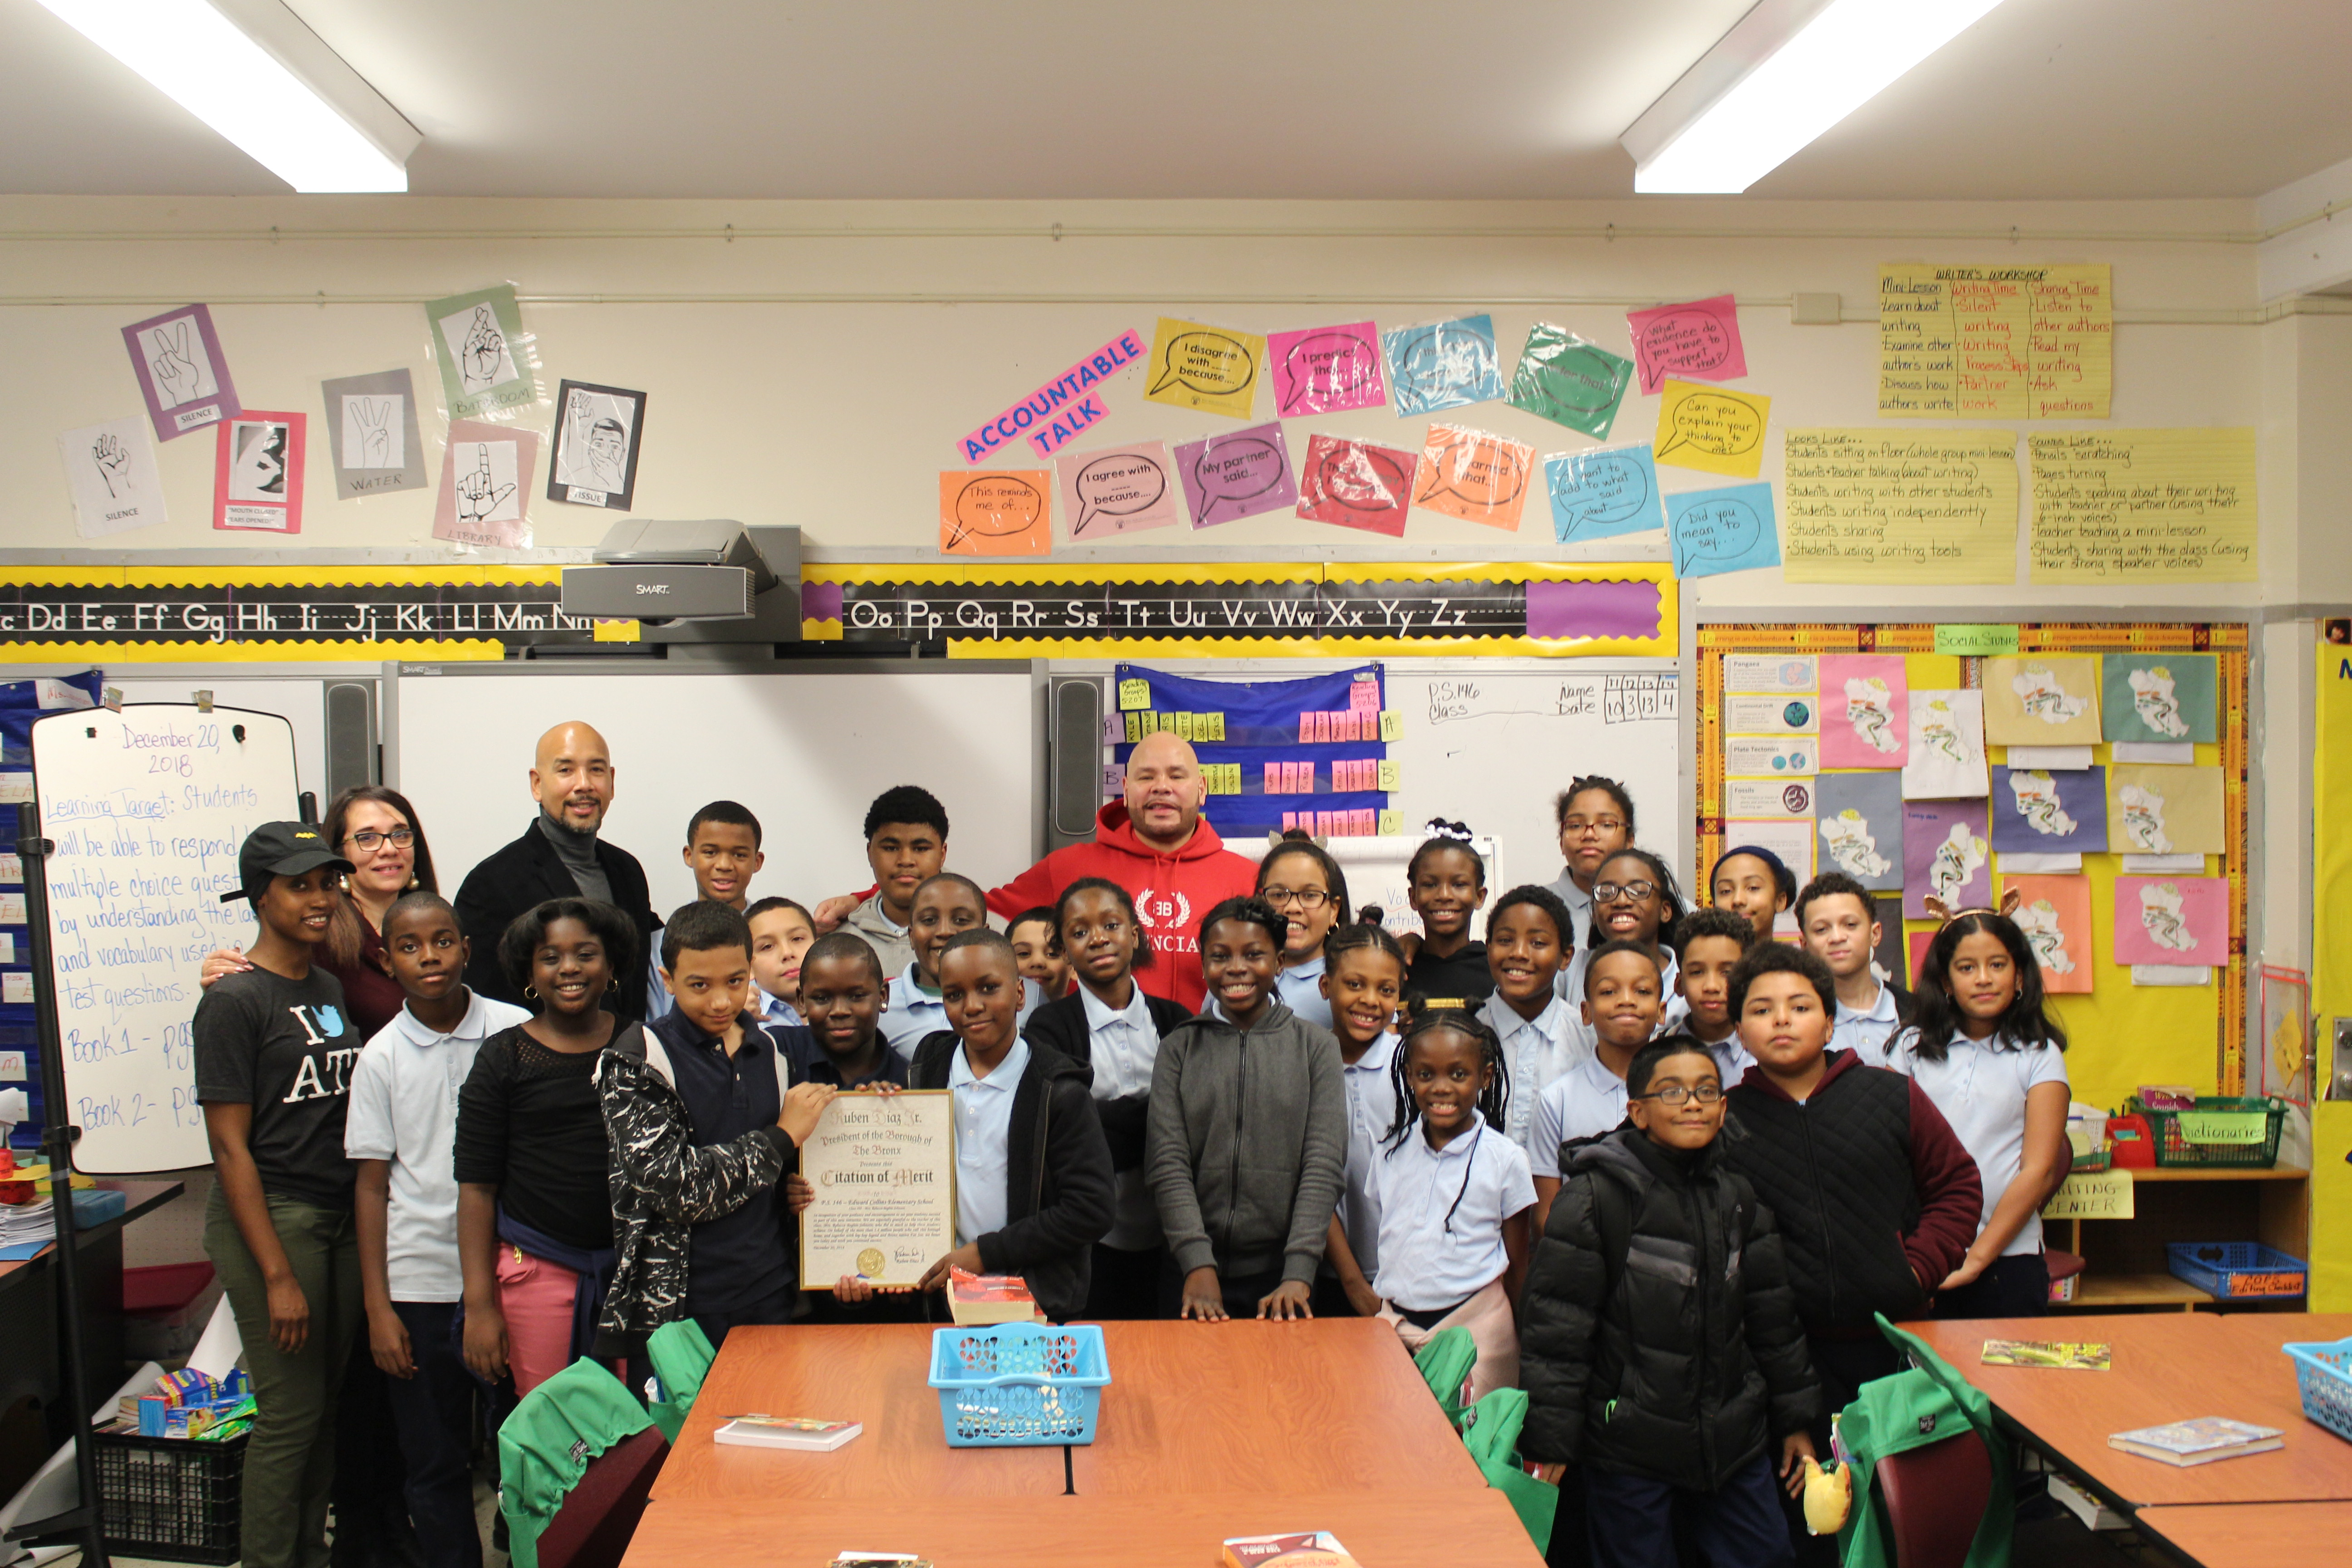 Borough President Diaz & Fat Joe Award Sneakers To Bronx Students